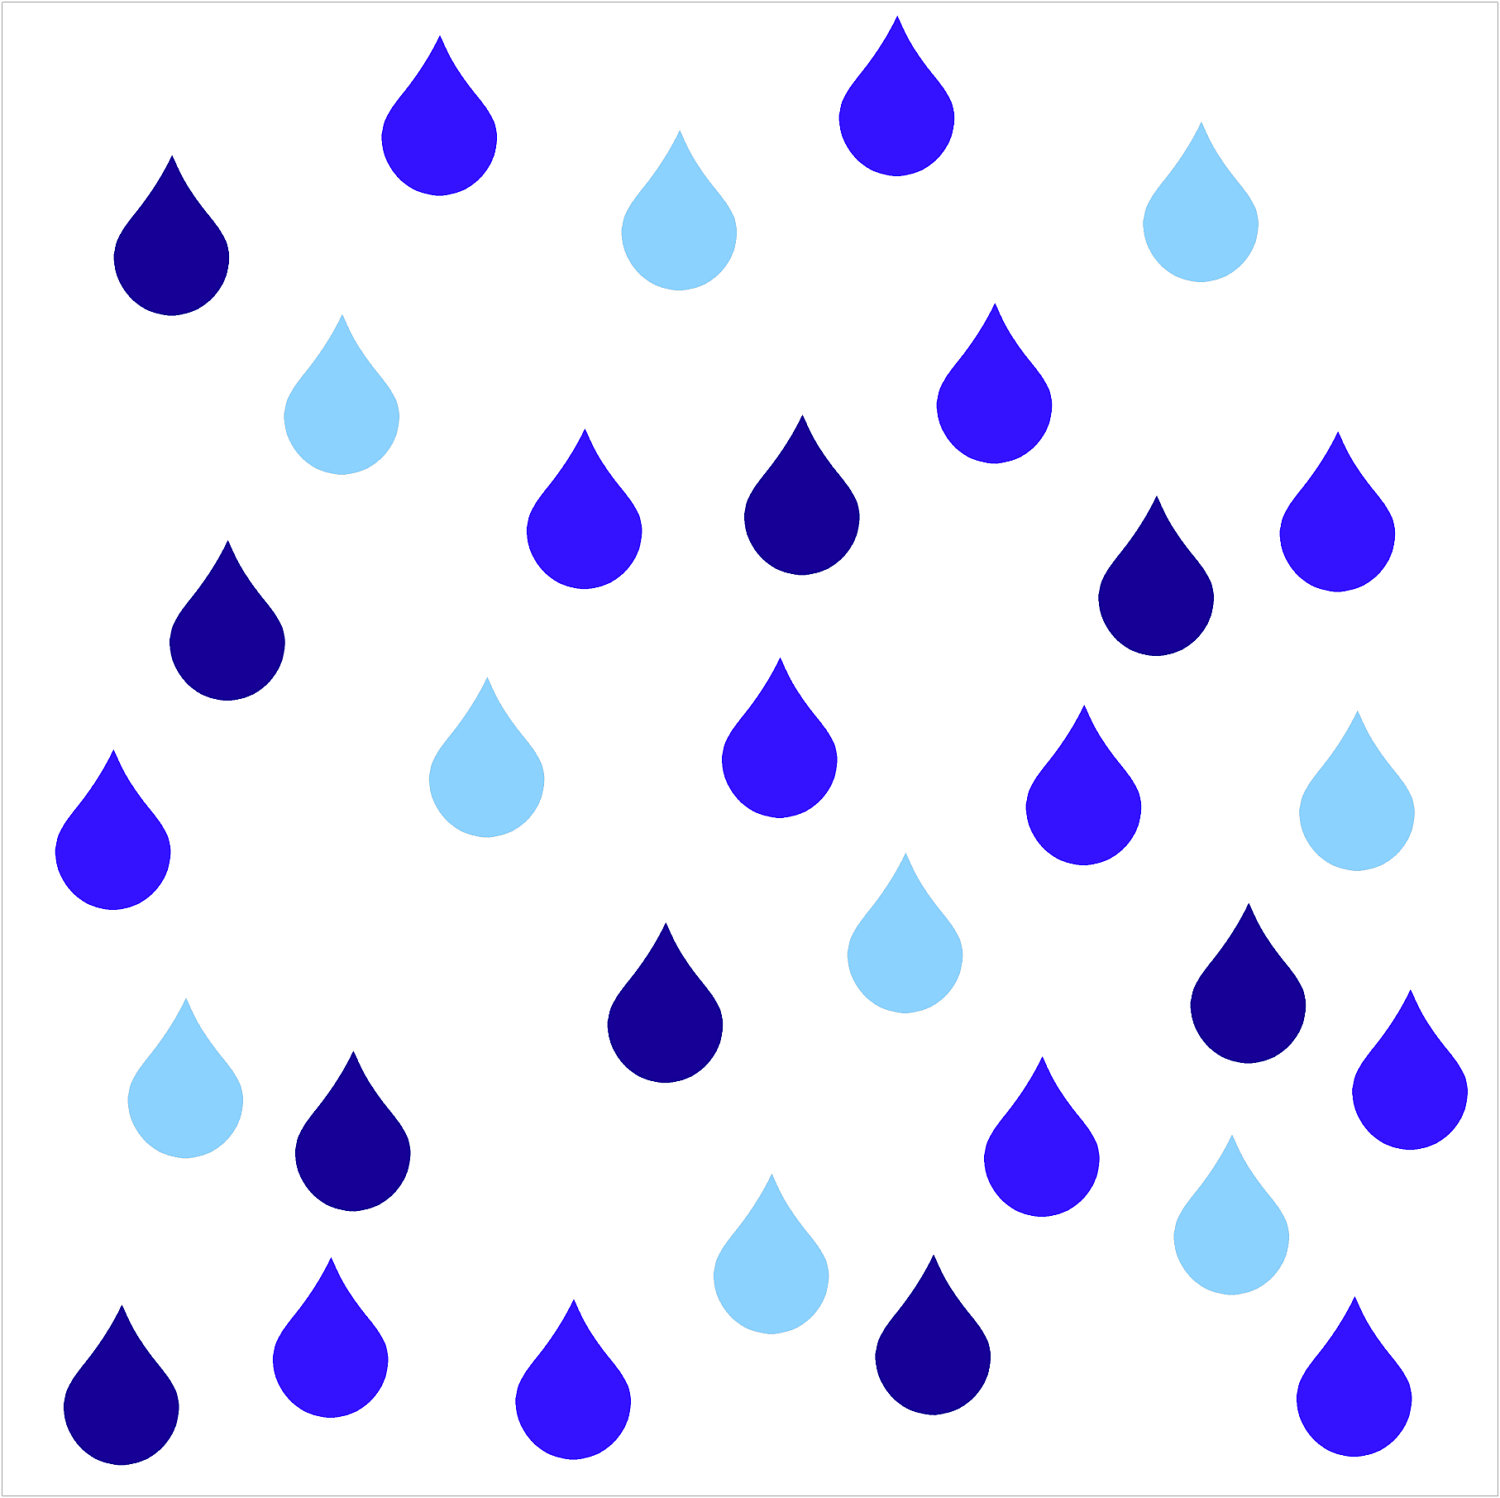 image about Printable Raindrops named Raindrop Define Free of charge down load easiest Raindrop Determine upon